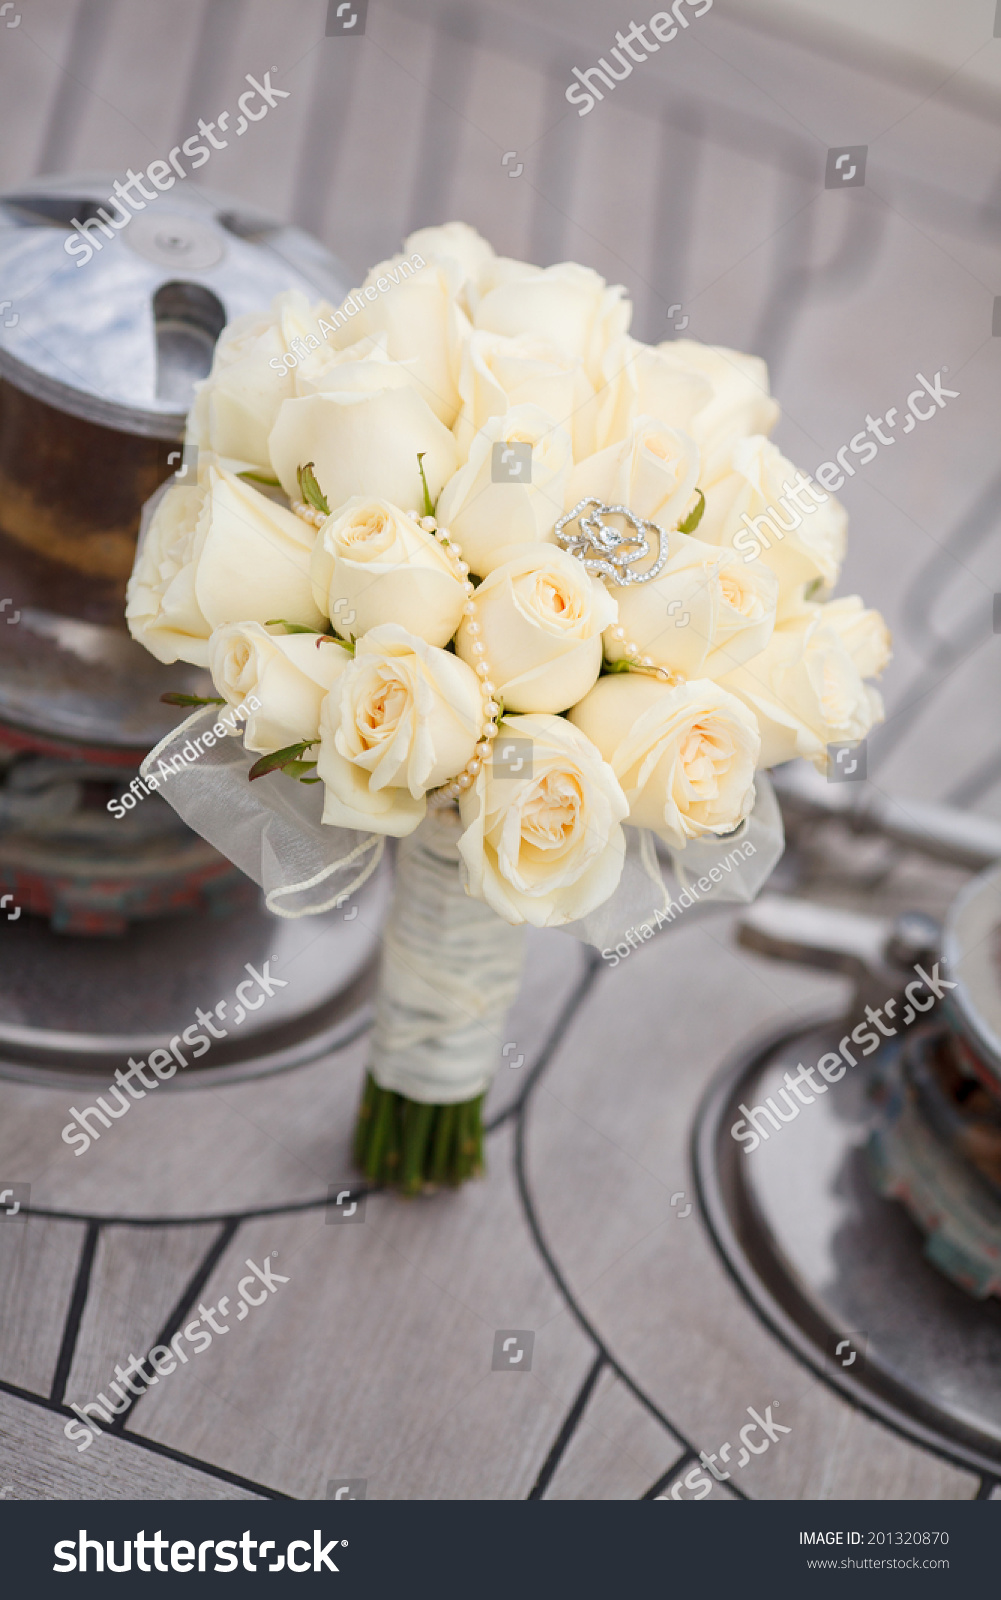 Wedding Flowers Bouquet White Roses Bride Stock Photo Edit Now